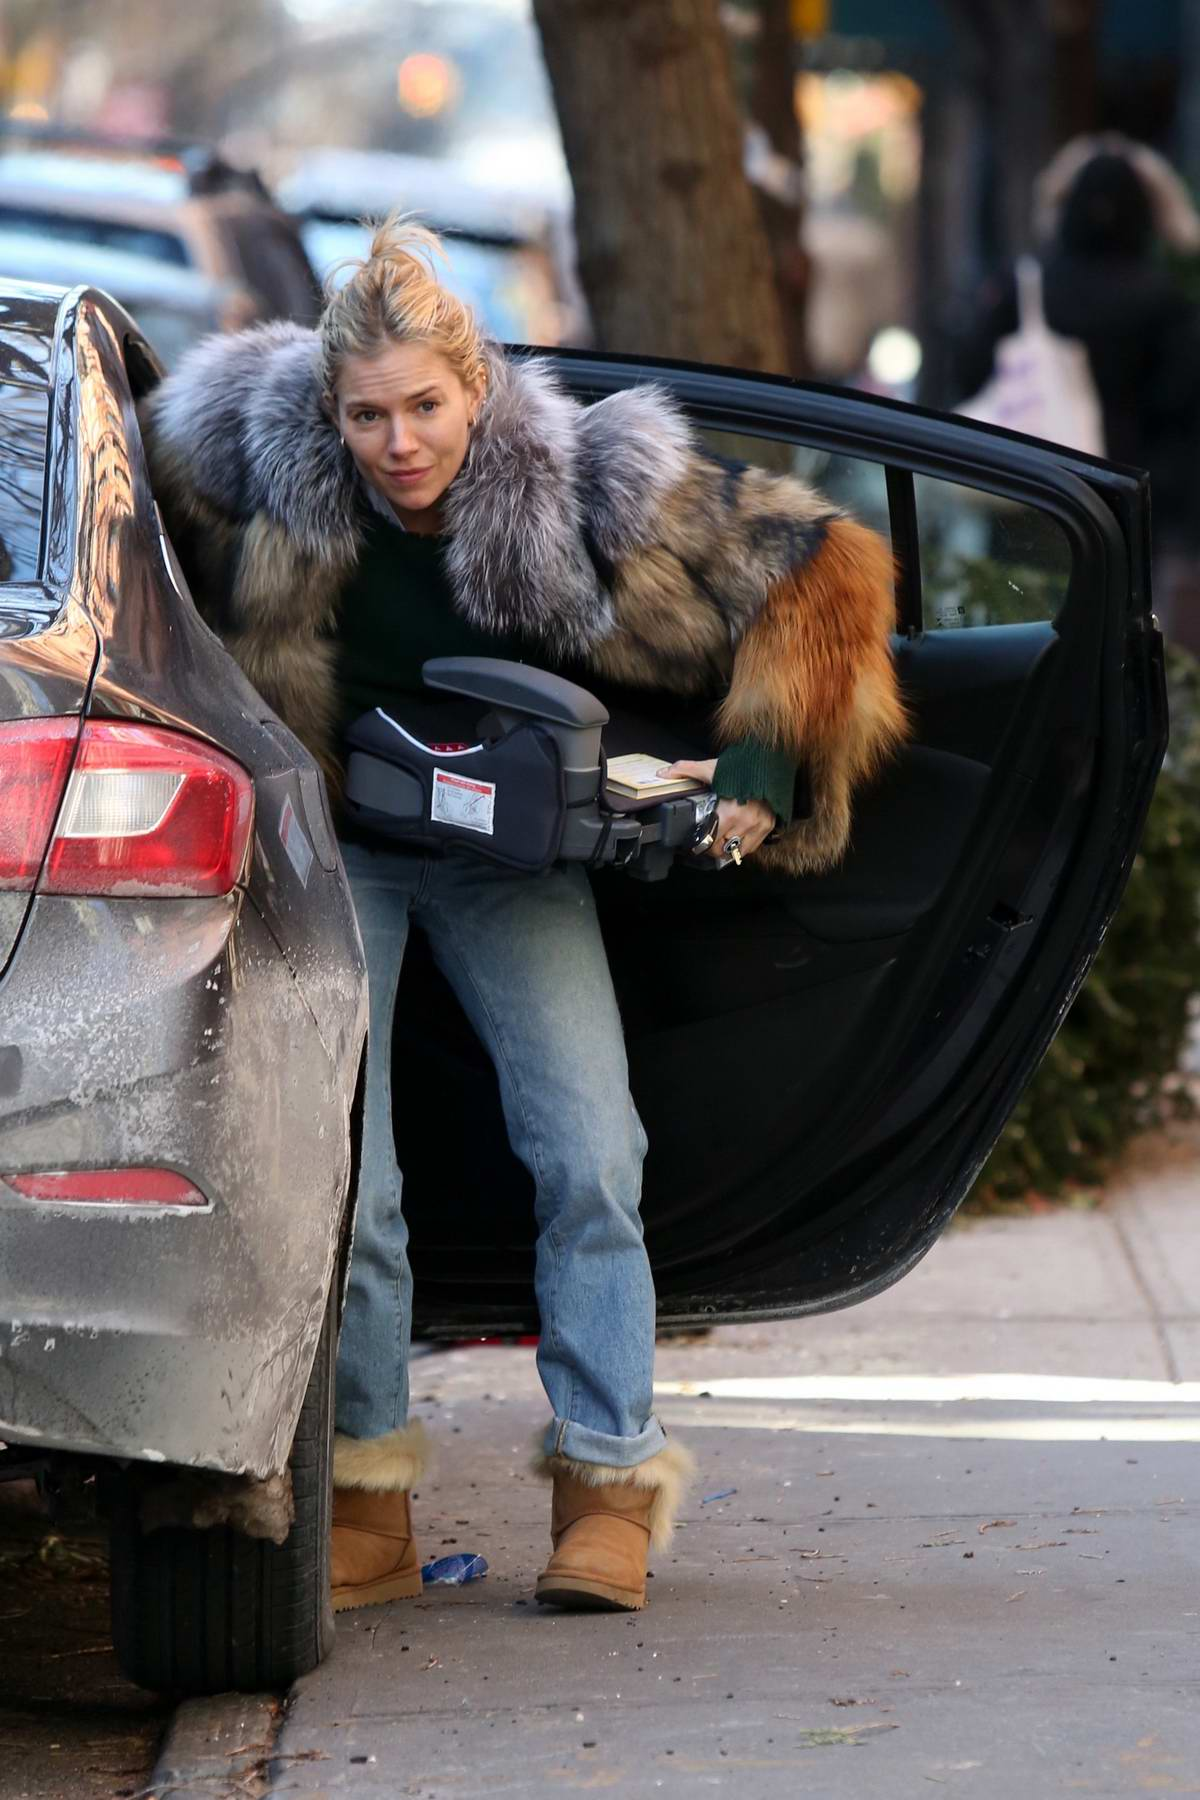 Sienna Miller in a fur jacket and fur boots unloading a car in the West Village, New York City